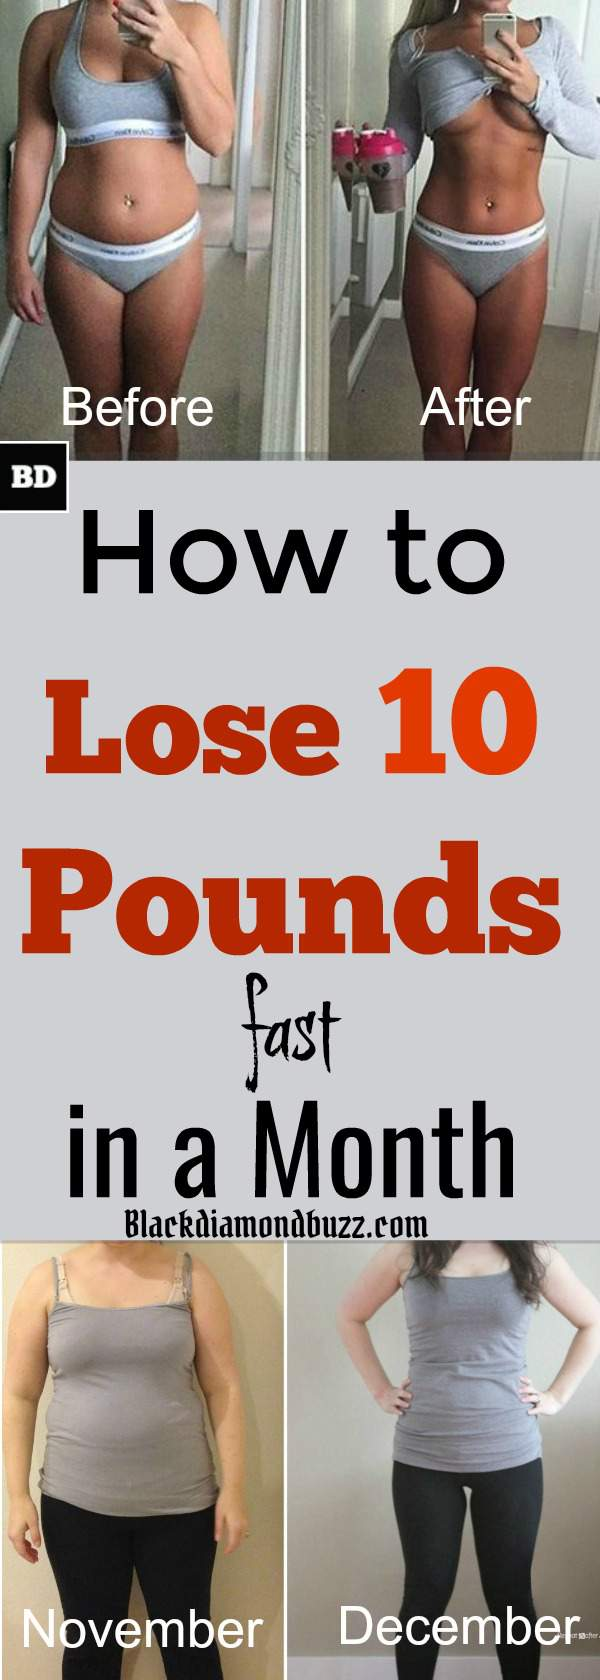 How to Lose 10 Pounds in a Month Naturally - Healthy Weight Loss Plan